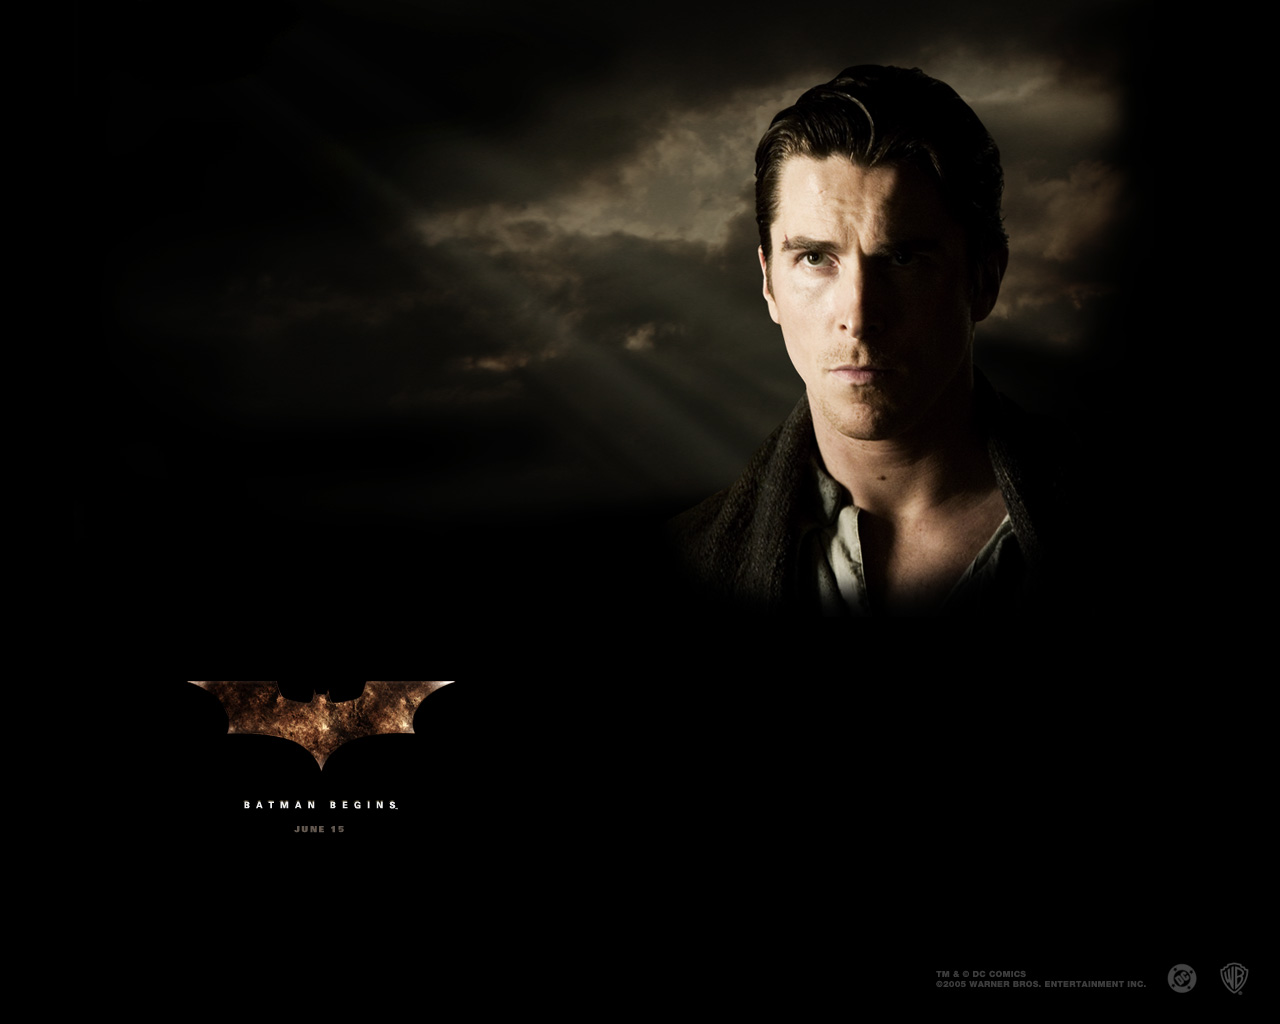 Batman_Begins_05_1280x1024.jpg